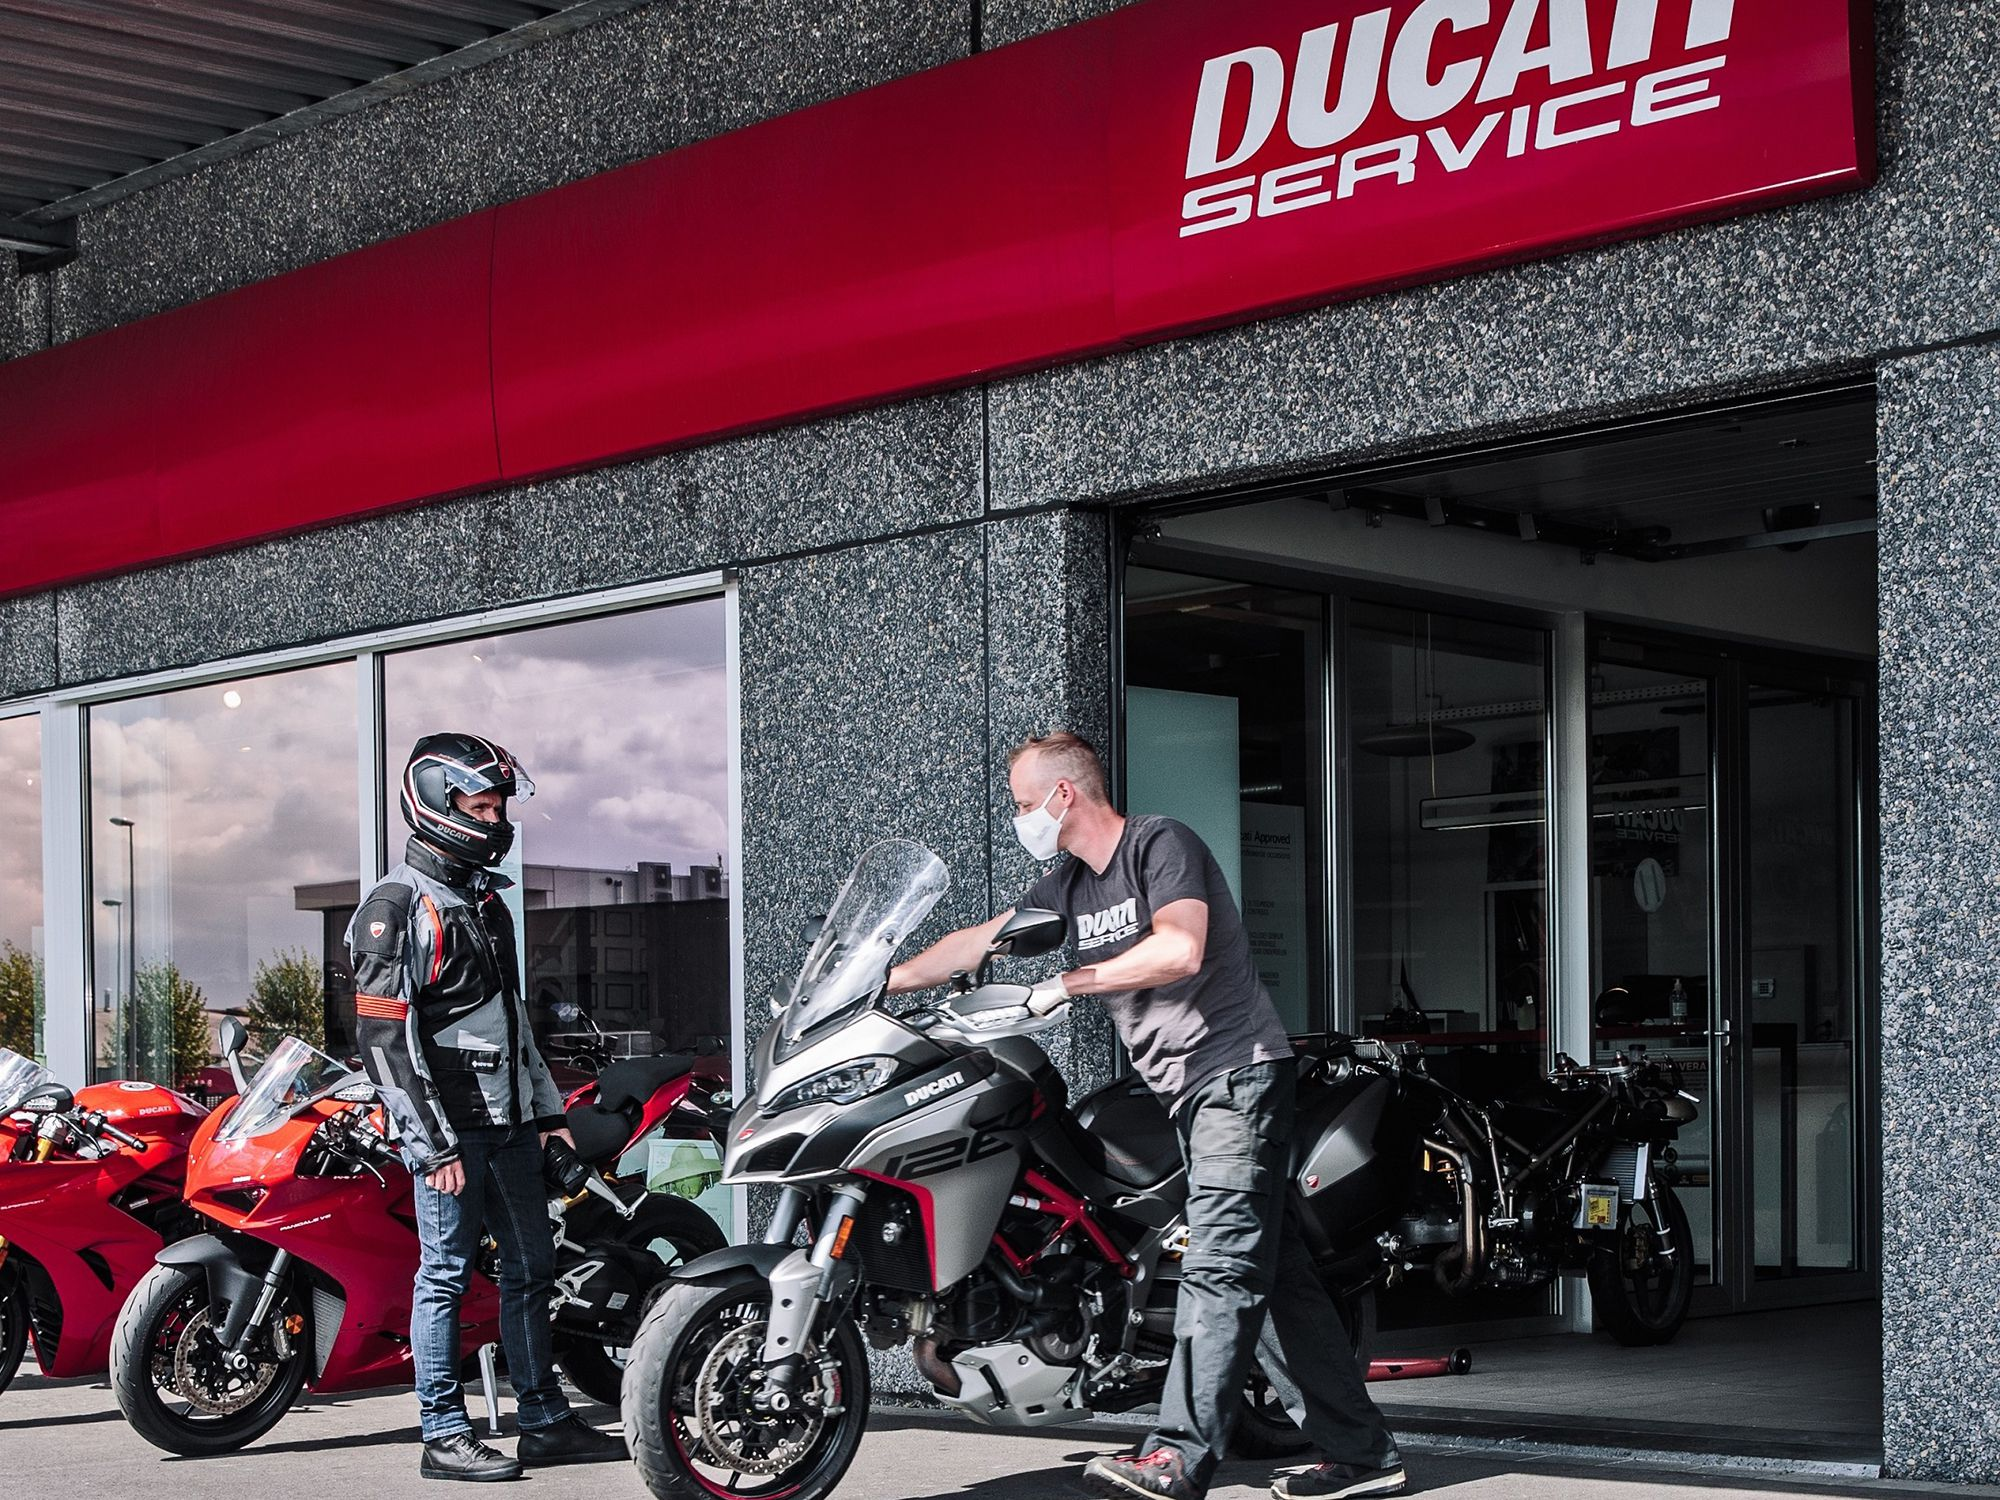 Ducati's flagship NYC store saw a healthy 24-percent increase in April 2020 for new motorcycles sold.